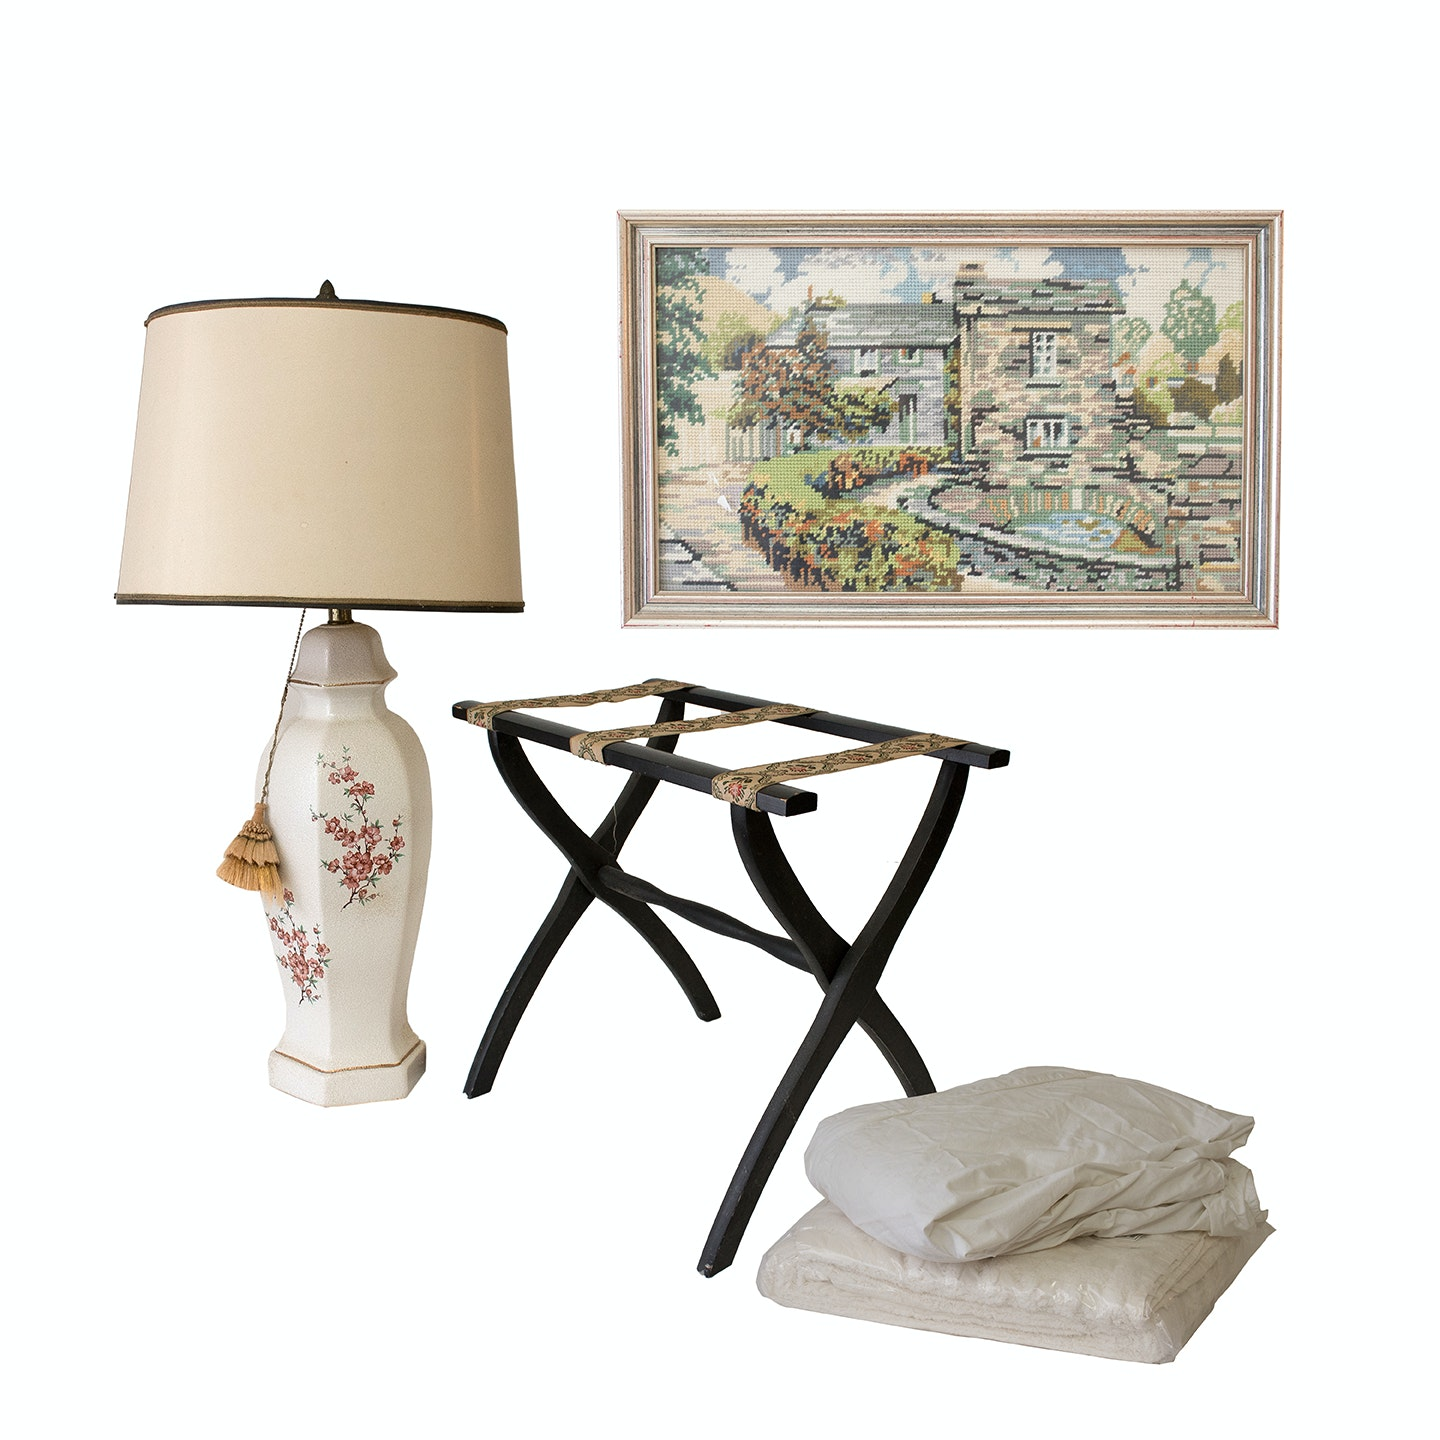 Bed Linens and Vintage Home Decor